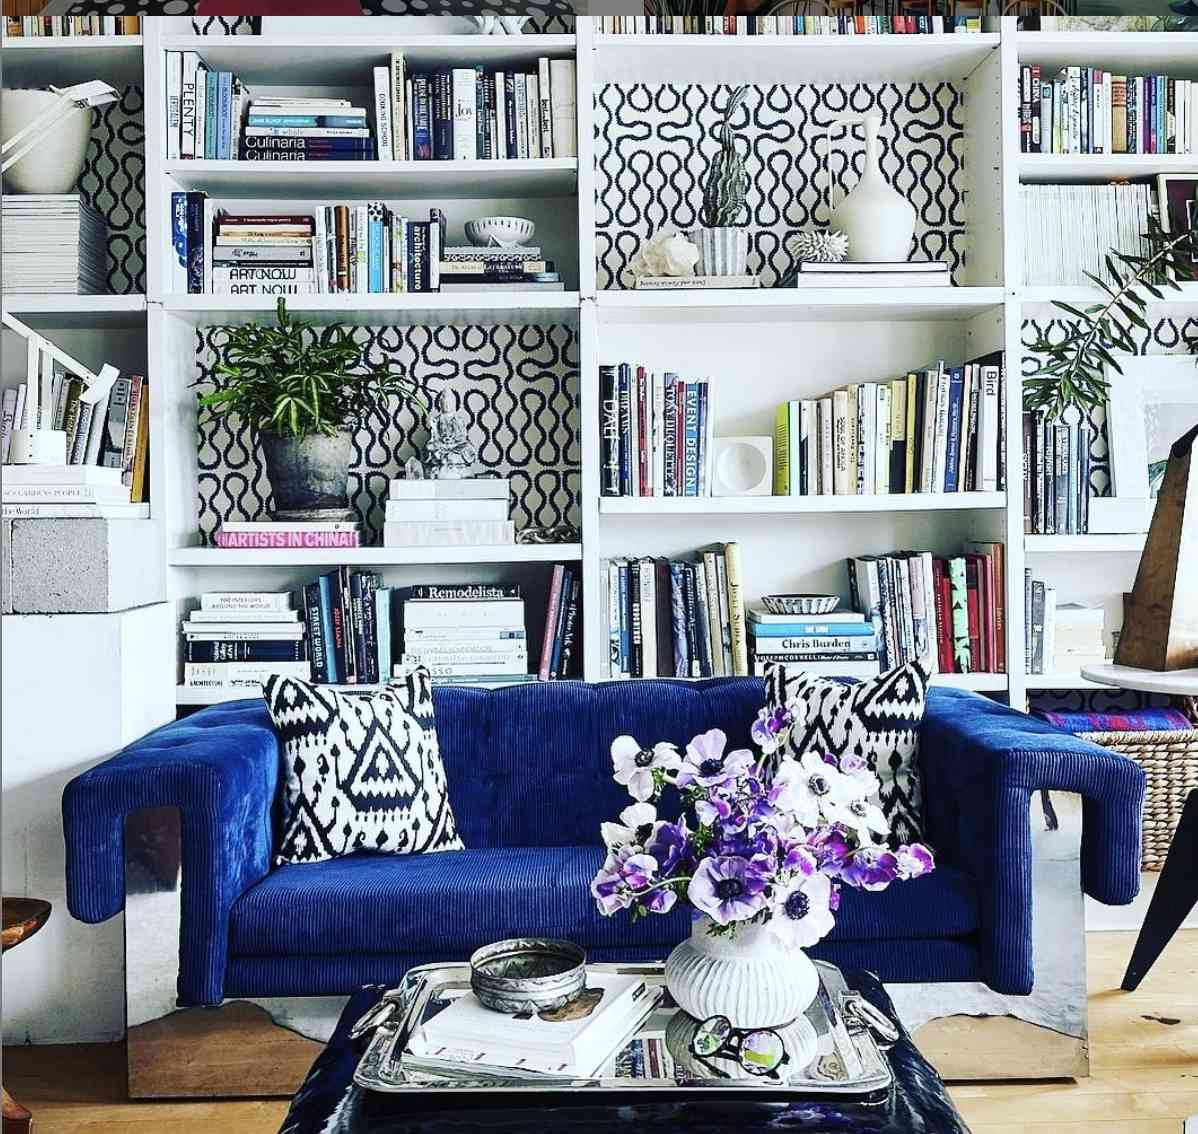 white bookshelves with wallpaper backing, blue couch